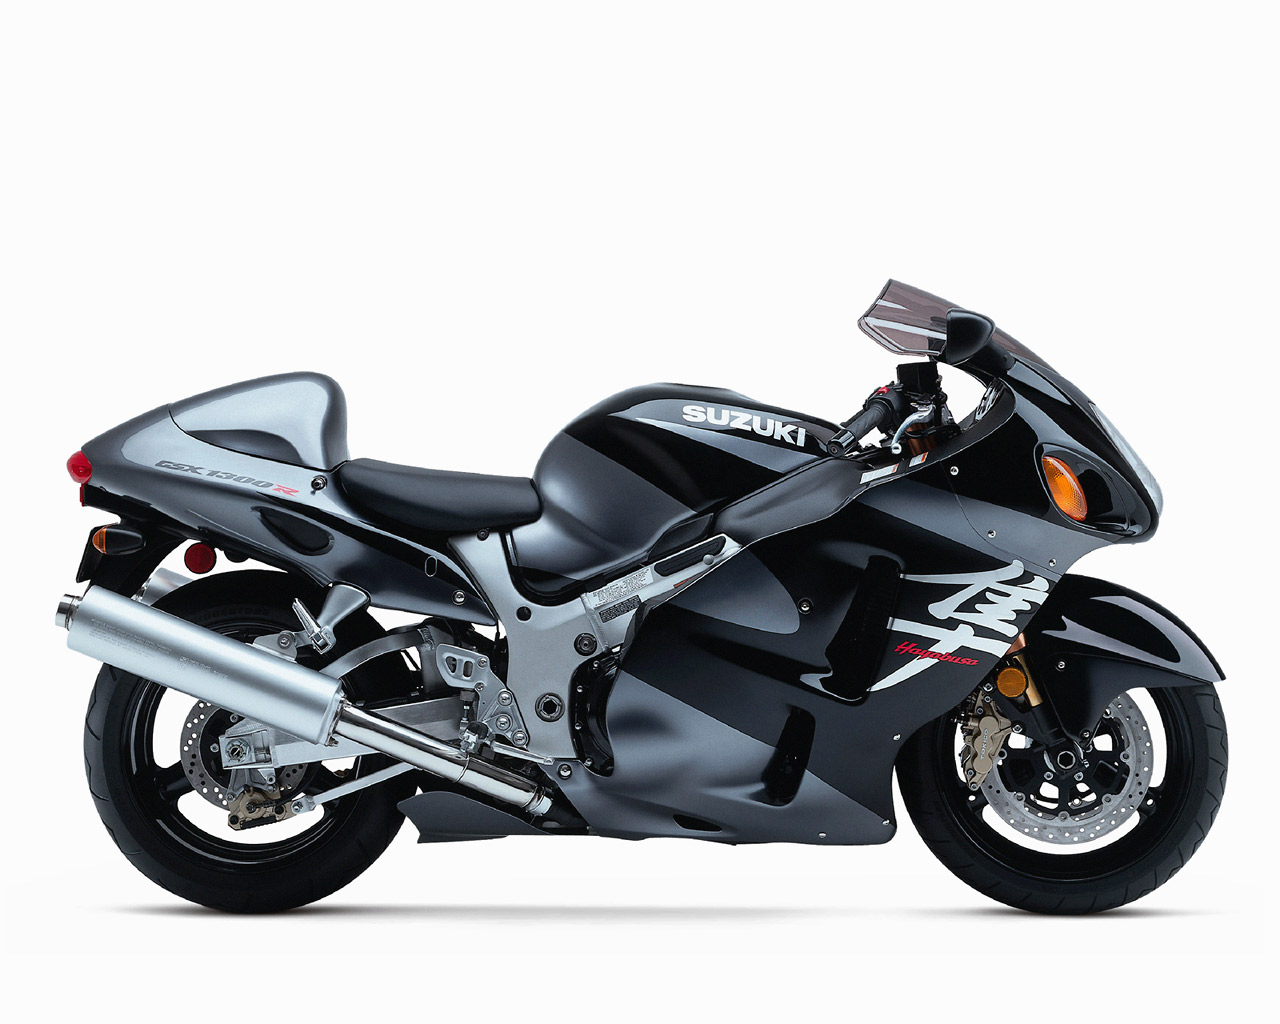 Suzuki Bike Wallpapers Gallery